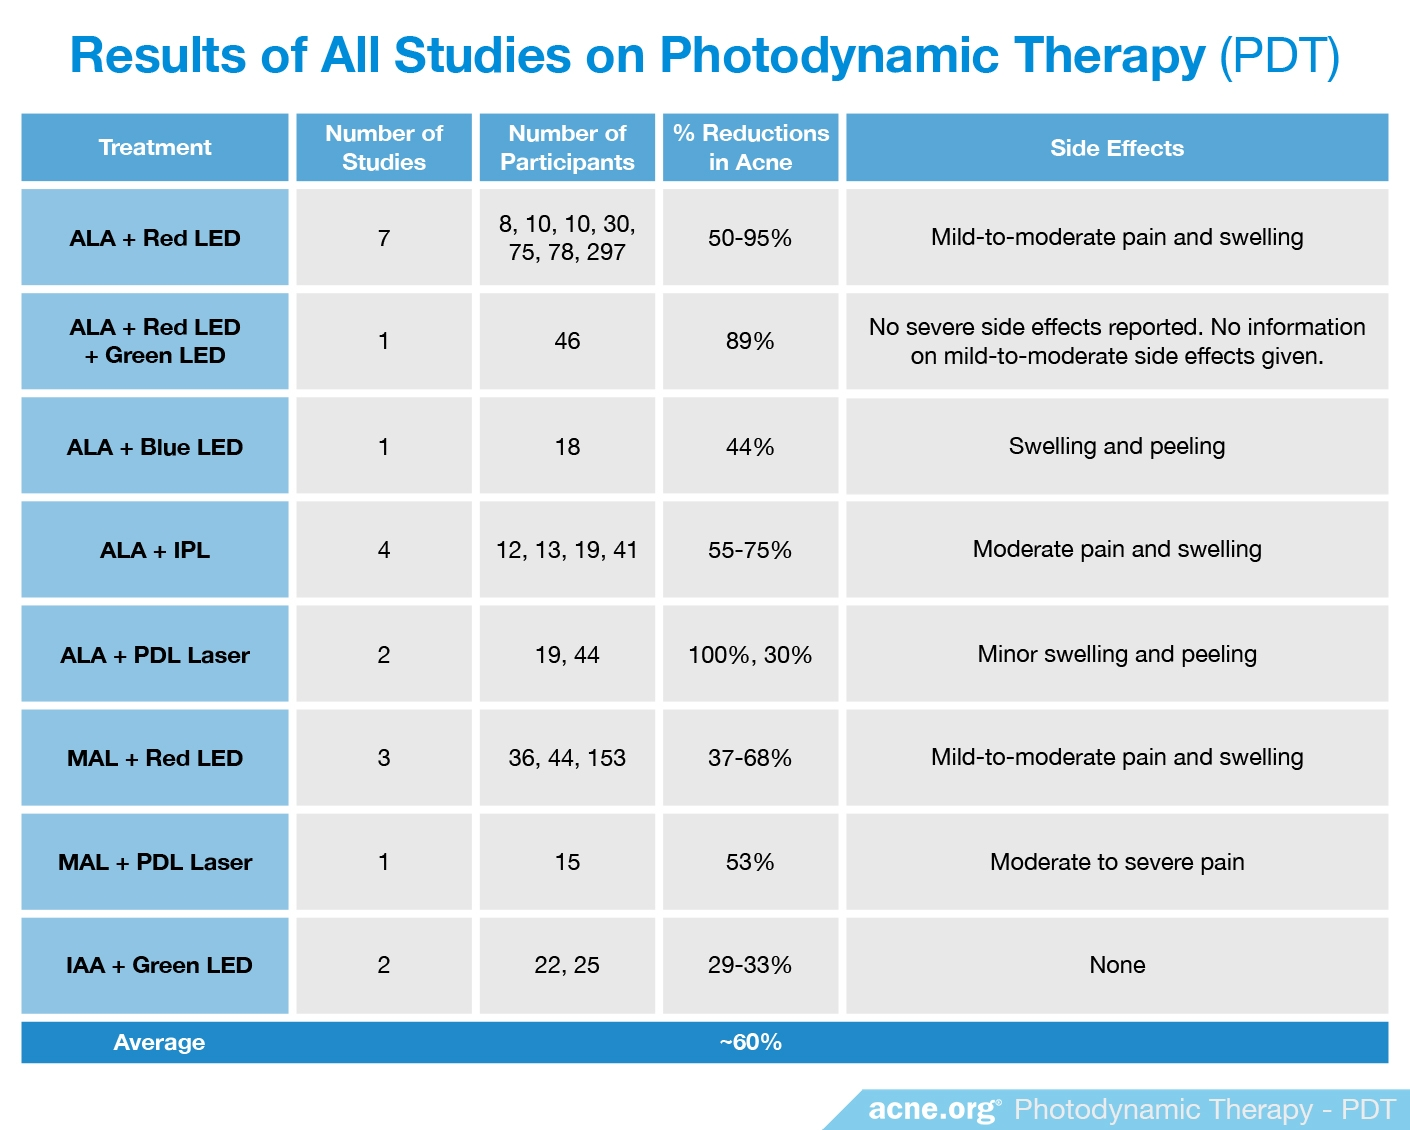 Results from All Studies on Photodynamic Therapy - Acne.org